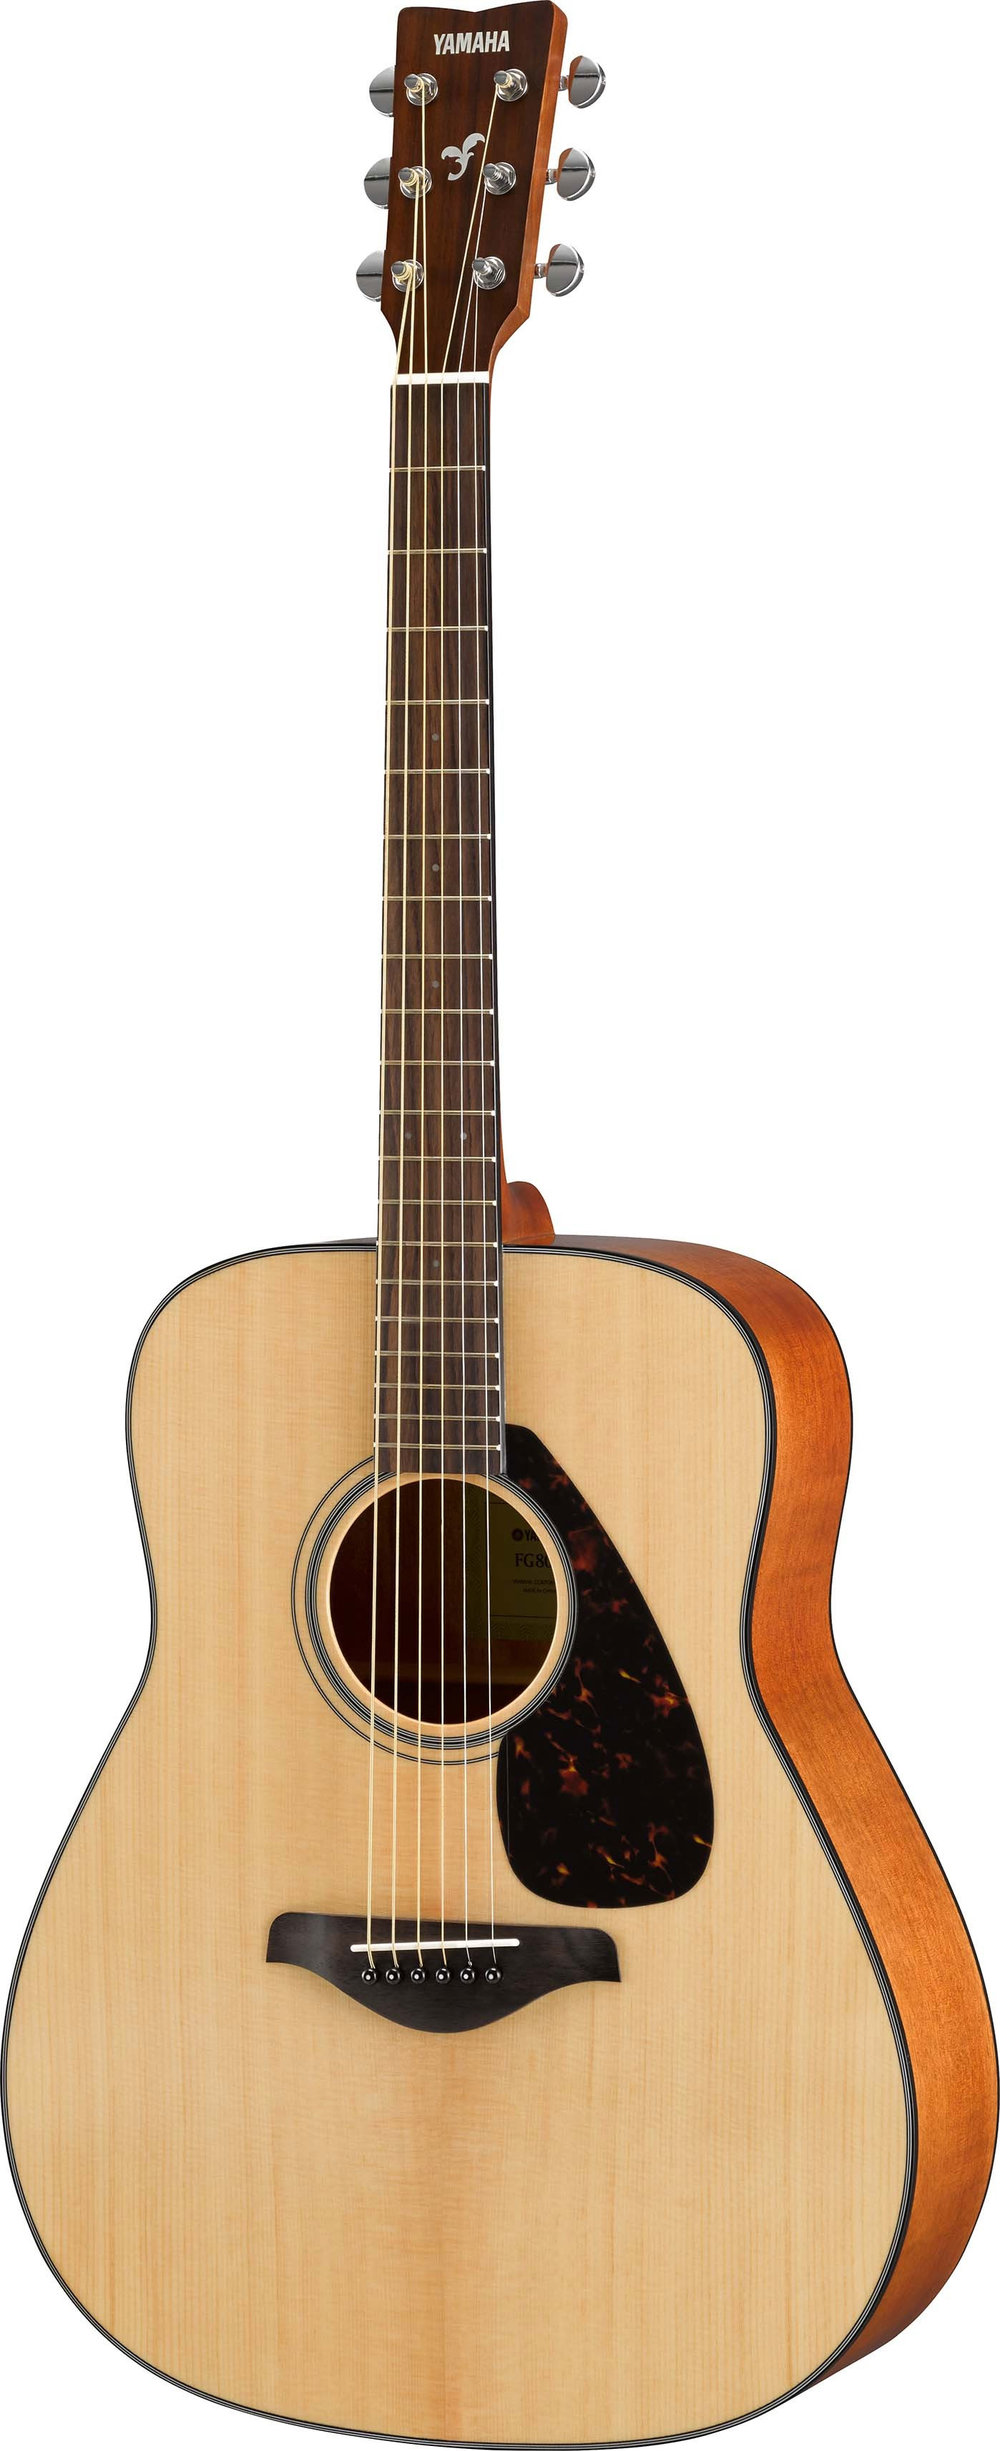 FG800 and FS800  $199.99 - The YAMAHA FG/FS 800 SeriesWhen it was introduced in 1966, the Yamaha FG proved that a great acoustic guitar didn't need to cost a fortune. With a focus on great playability, musical tone and outstanding build quality, the original FG180 quickly became a classic with countless careers and hit records starting life on an FG. 50 years since the introduction of the FG acoustics, the new range features the best-ever FG tone and the same great playability and class-leading quality that's made it the choice of millions of guitarists.The 800 Series has a louder and stronger sound in the low to mid-ranges, thanks to cutting-edge acoustic analysis technology developed by the Yamaha R&D Division. Yamaha's engineers have achieved this sound by utilizing analysis and simulation to arrive at the best bracing design without depending on tradition.